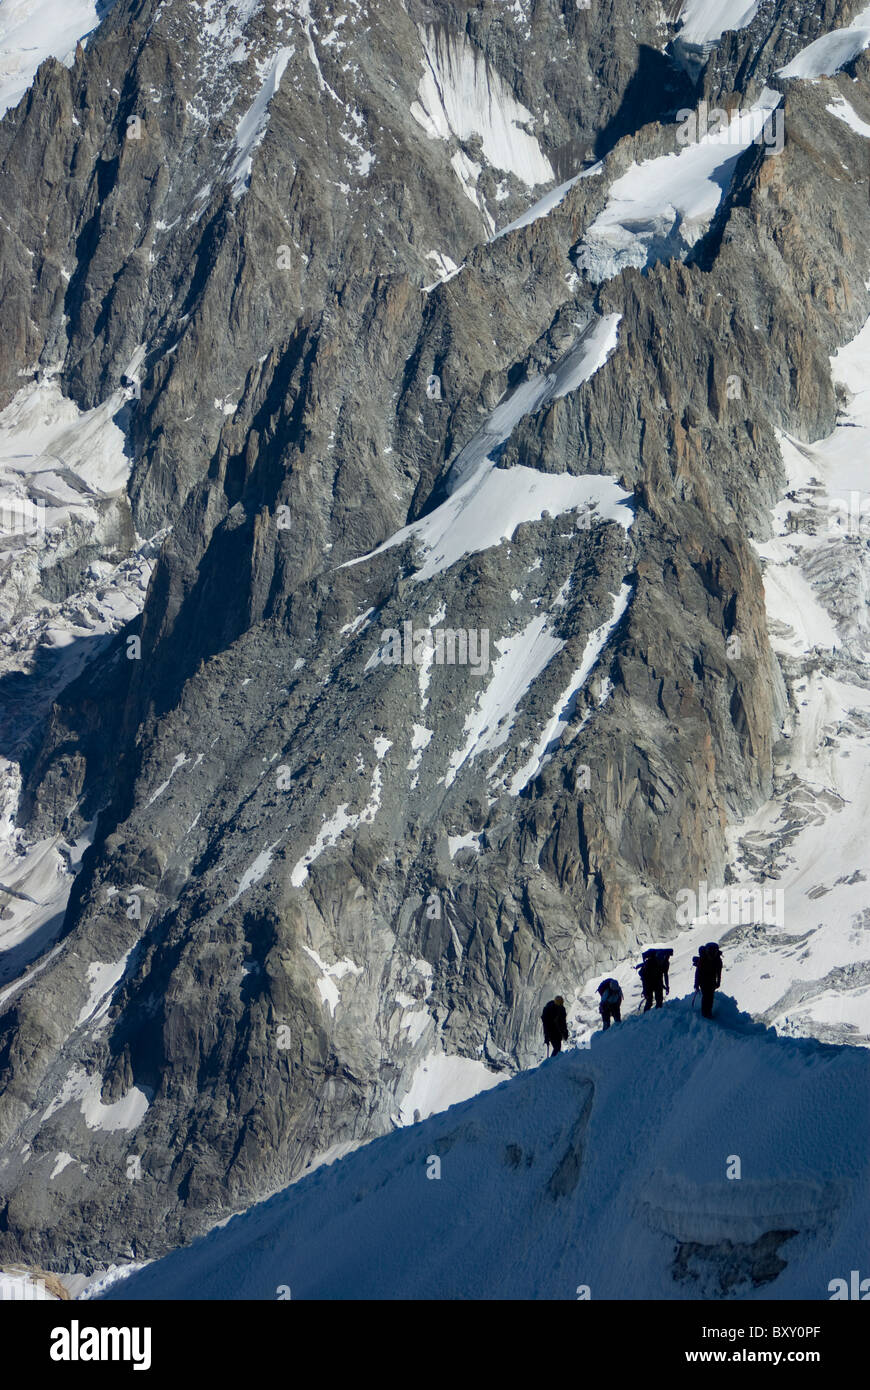 A group return after climbing Mont Blanc, Alps, France. Stock Photo